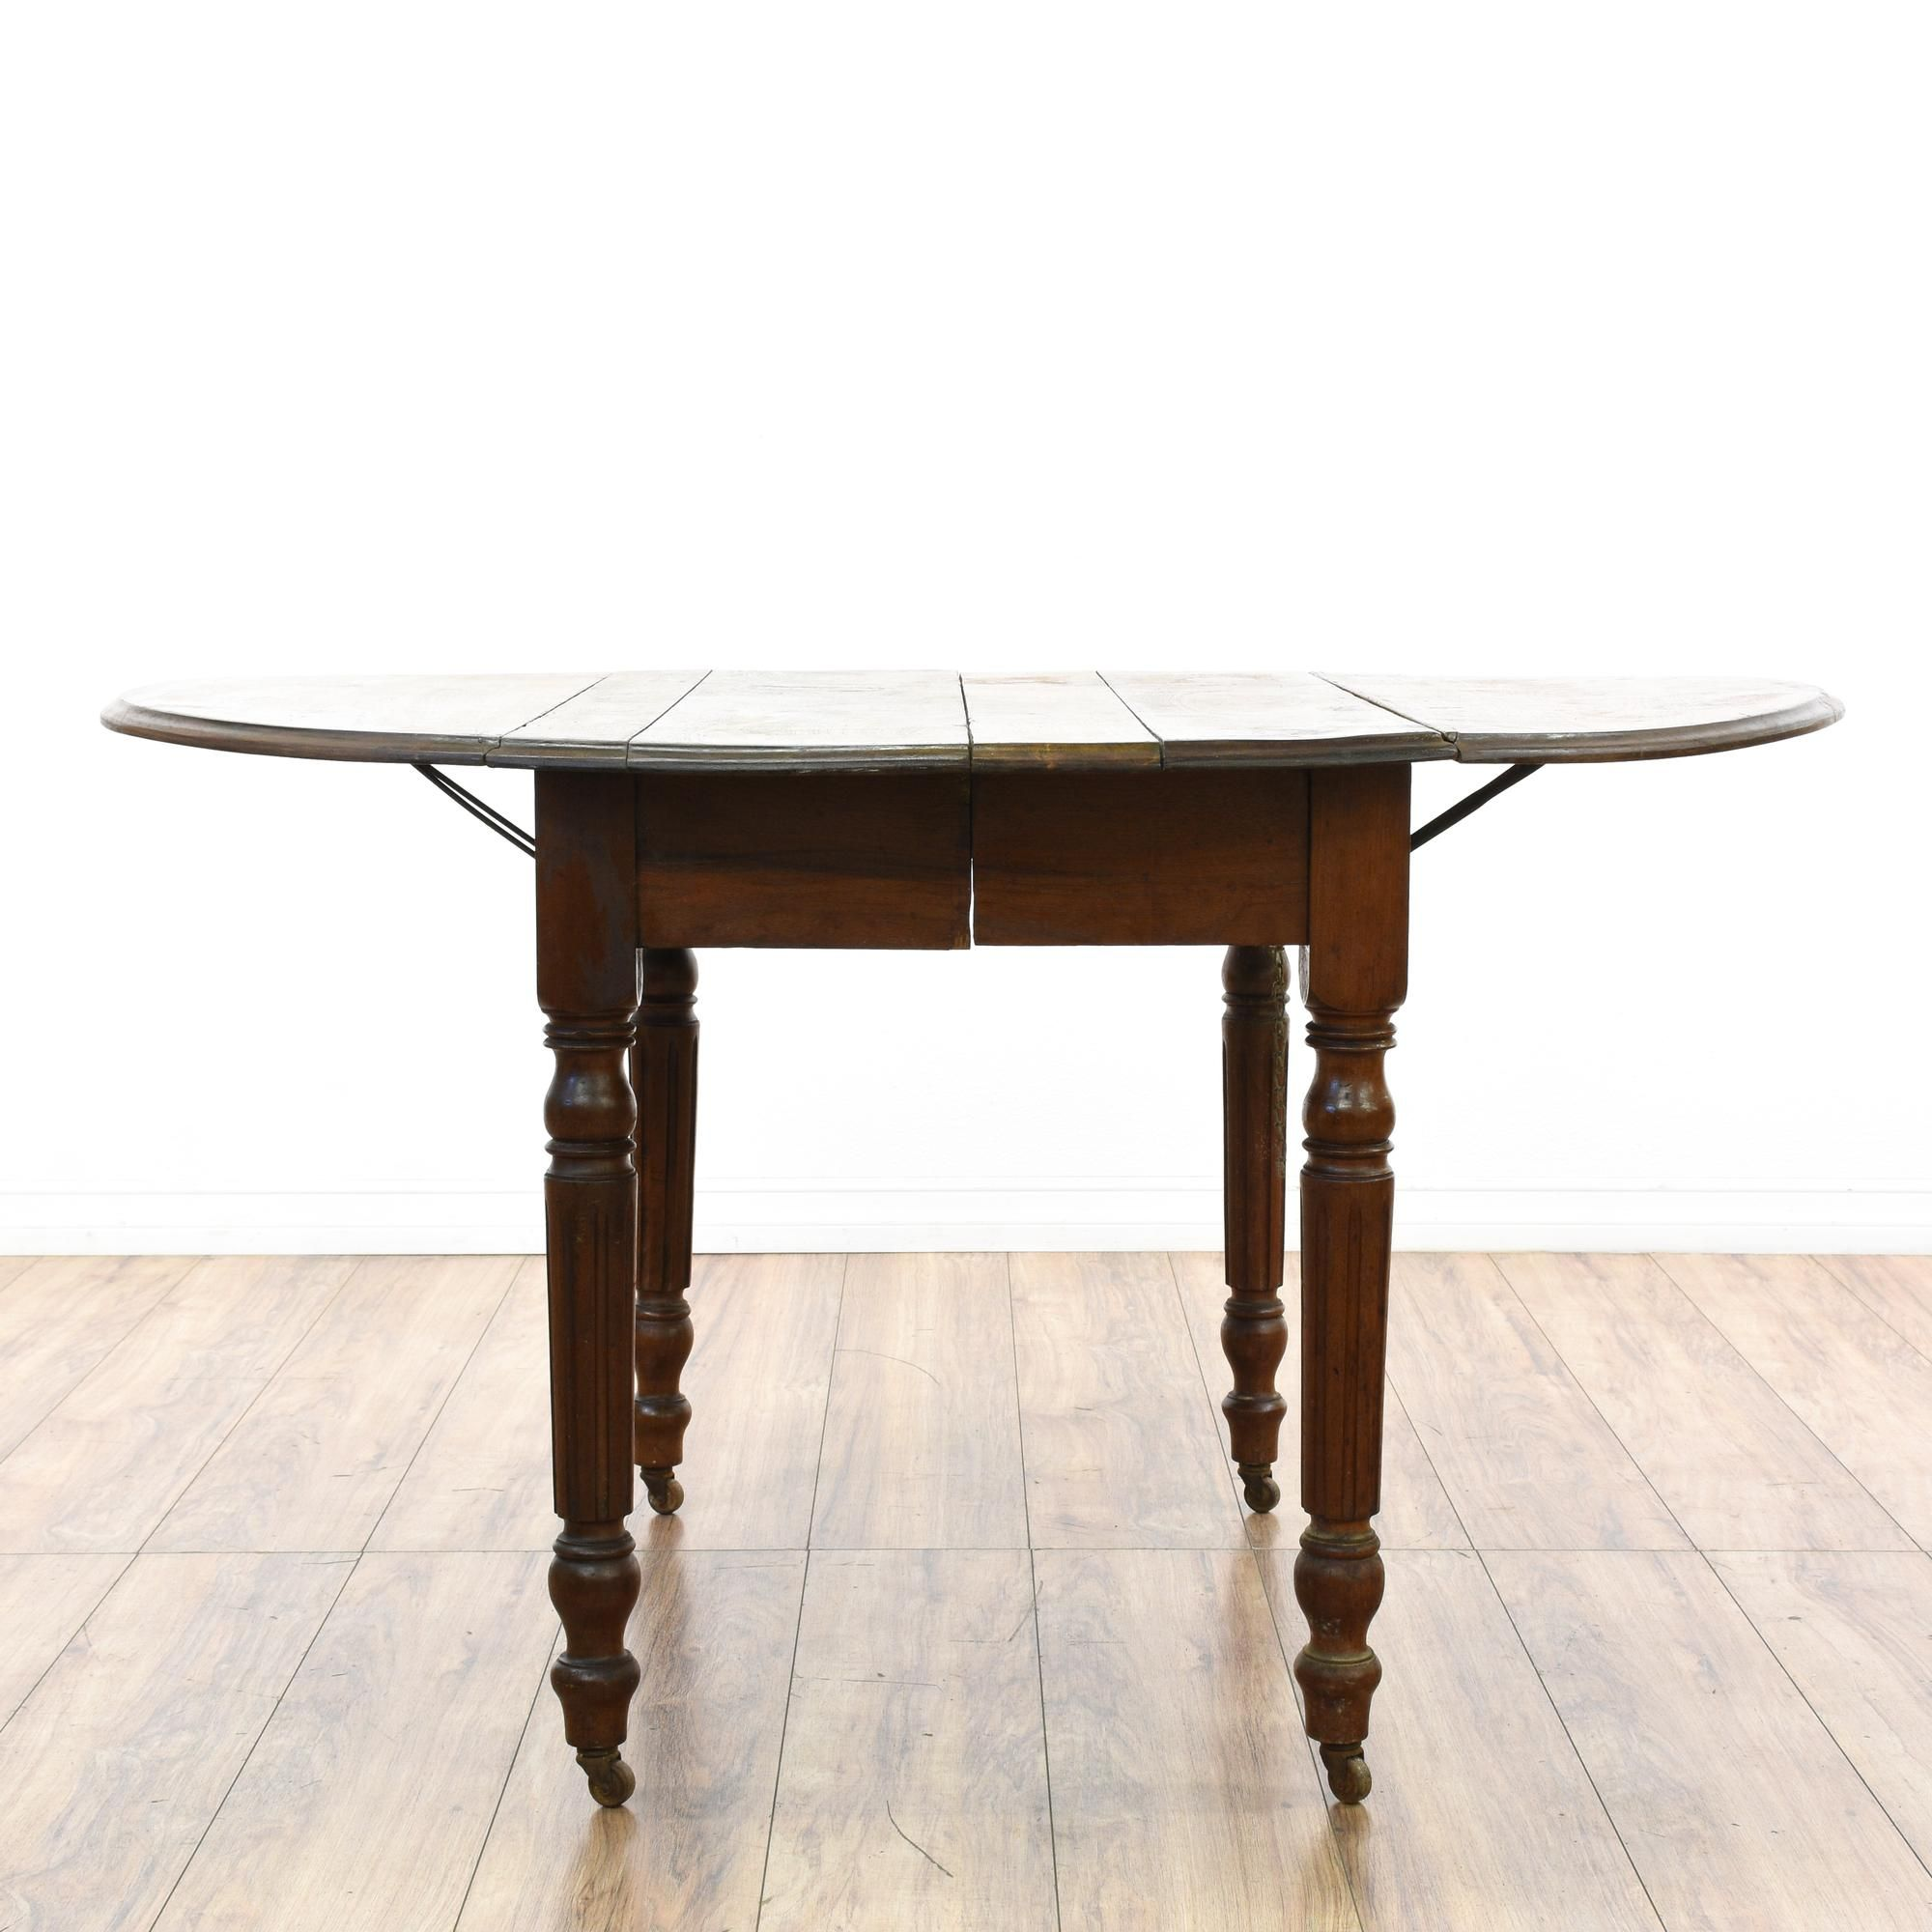 This Country Chic Style Kitchen Table Has Carved Fluted Legs,